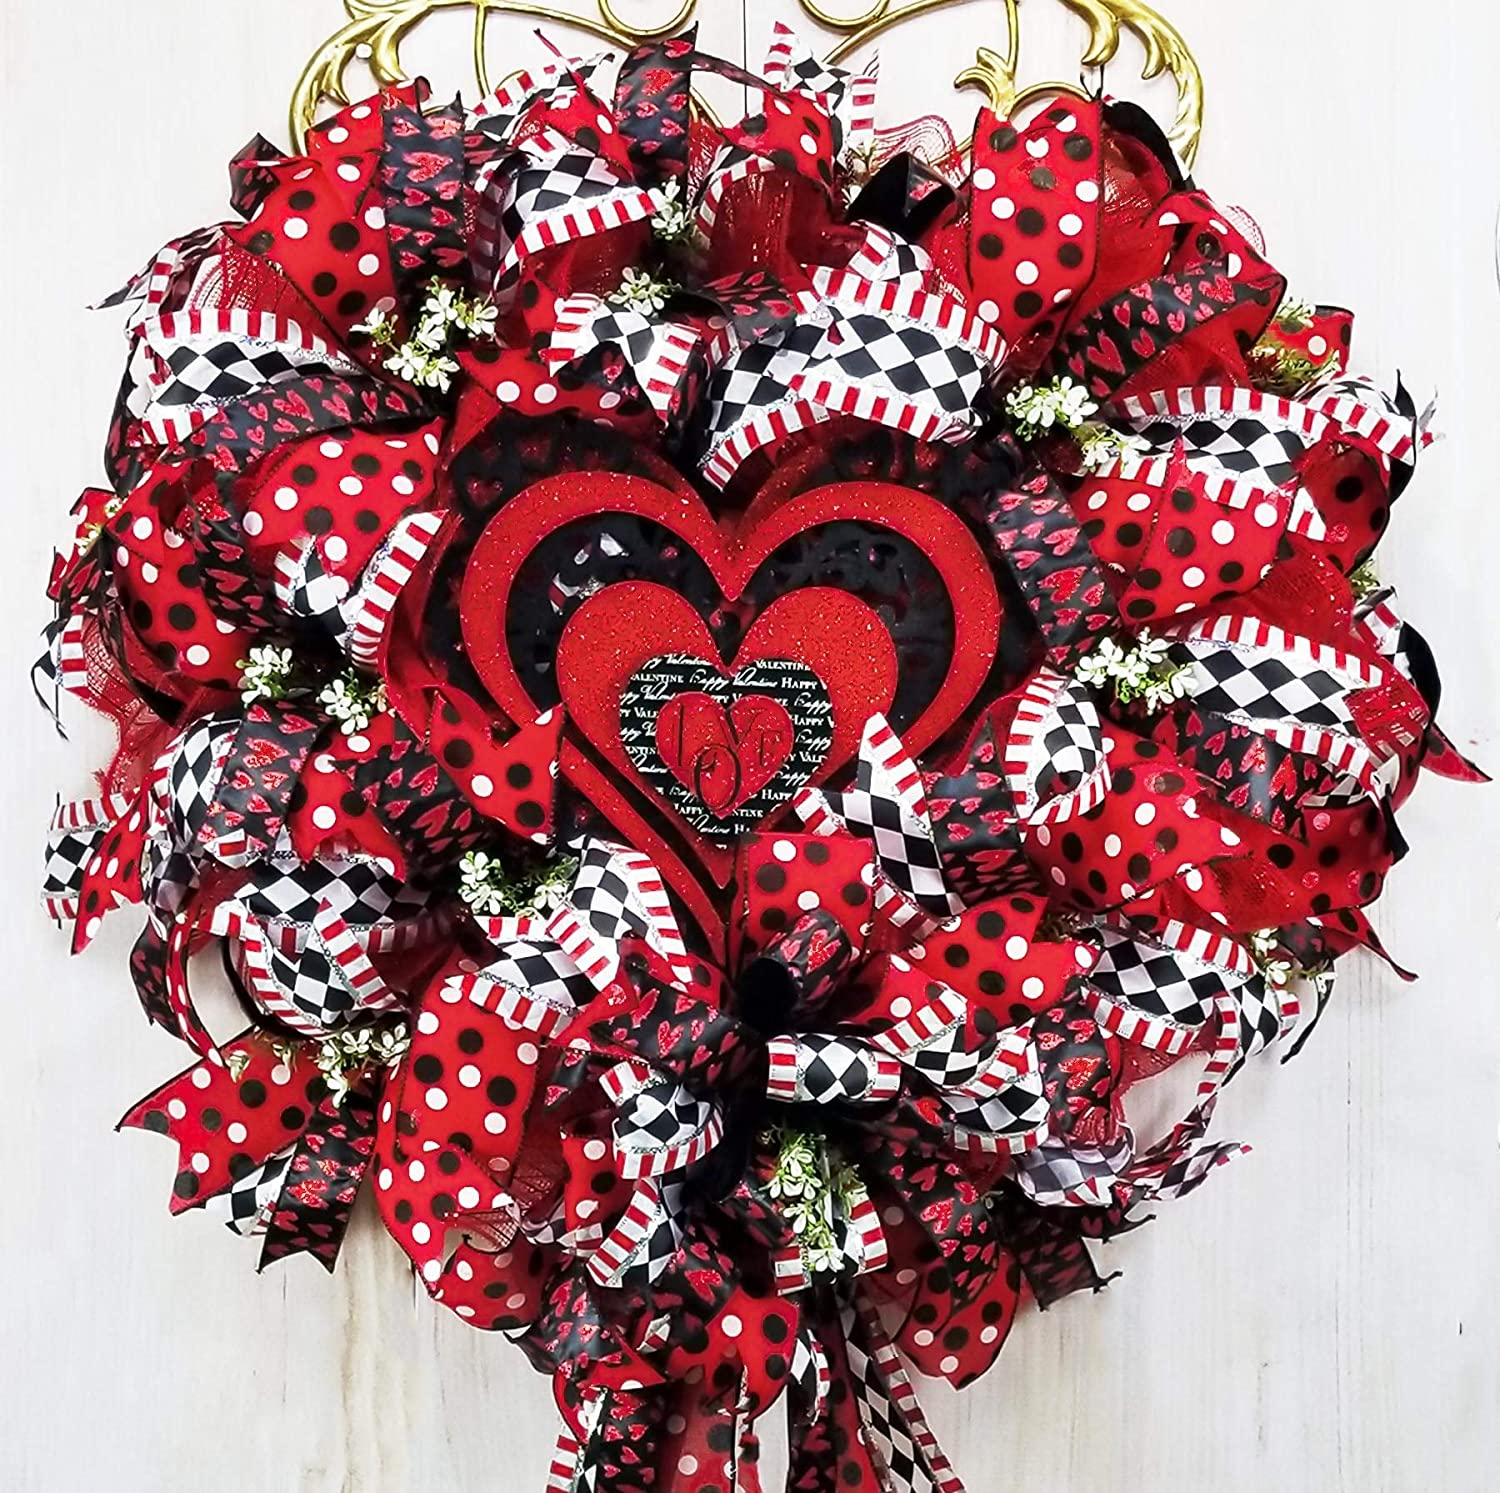 Red and White Valentines Day Heart Cookie Cutter Wreath Heart Decor Heart Door Hanger Heart Wreath Valentines Day Decor